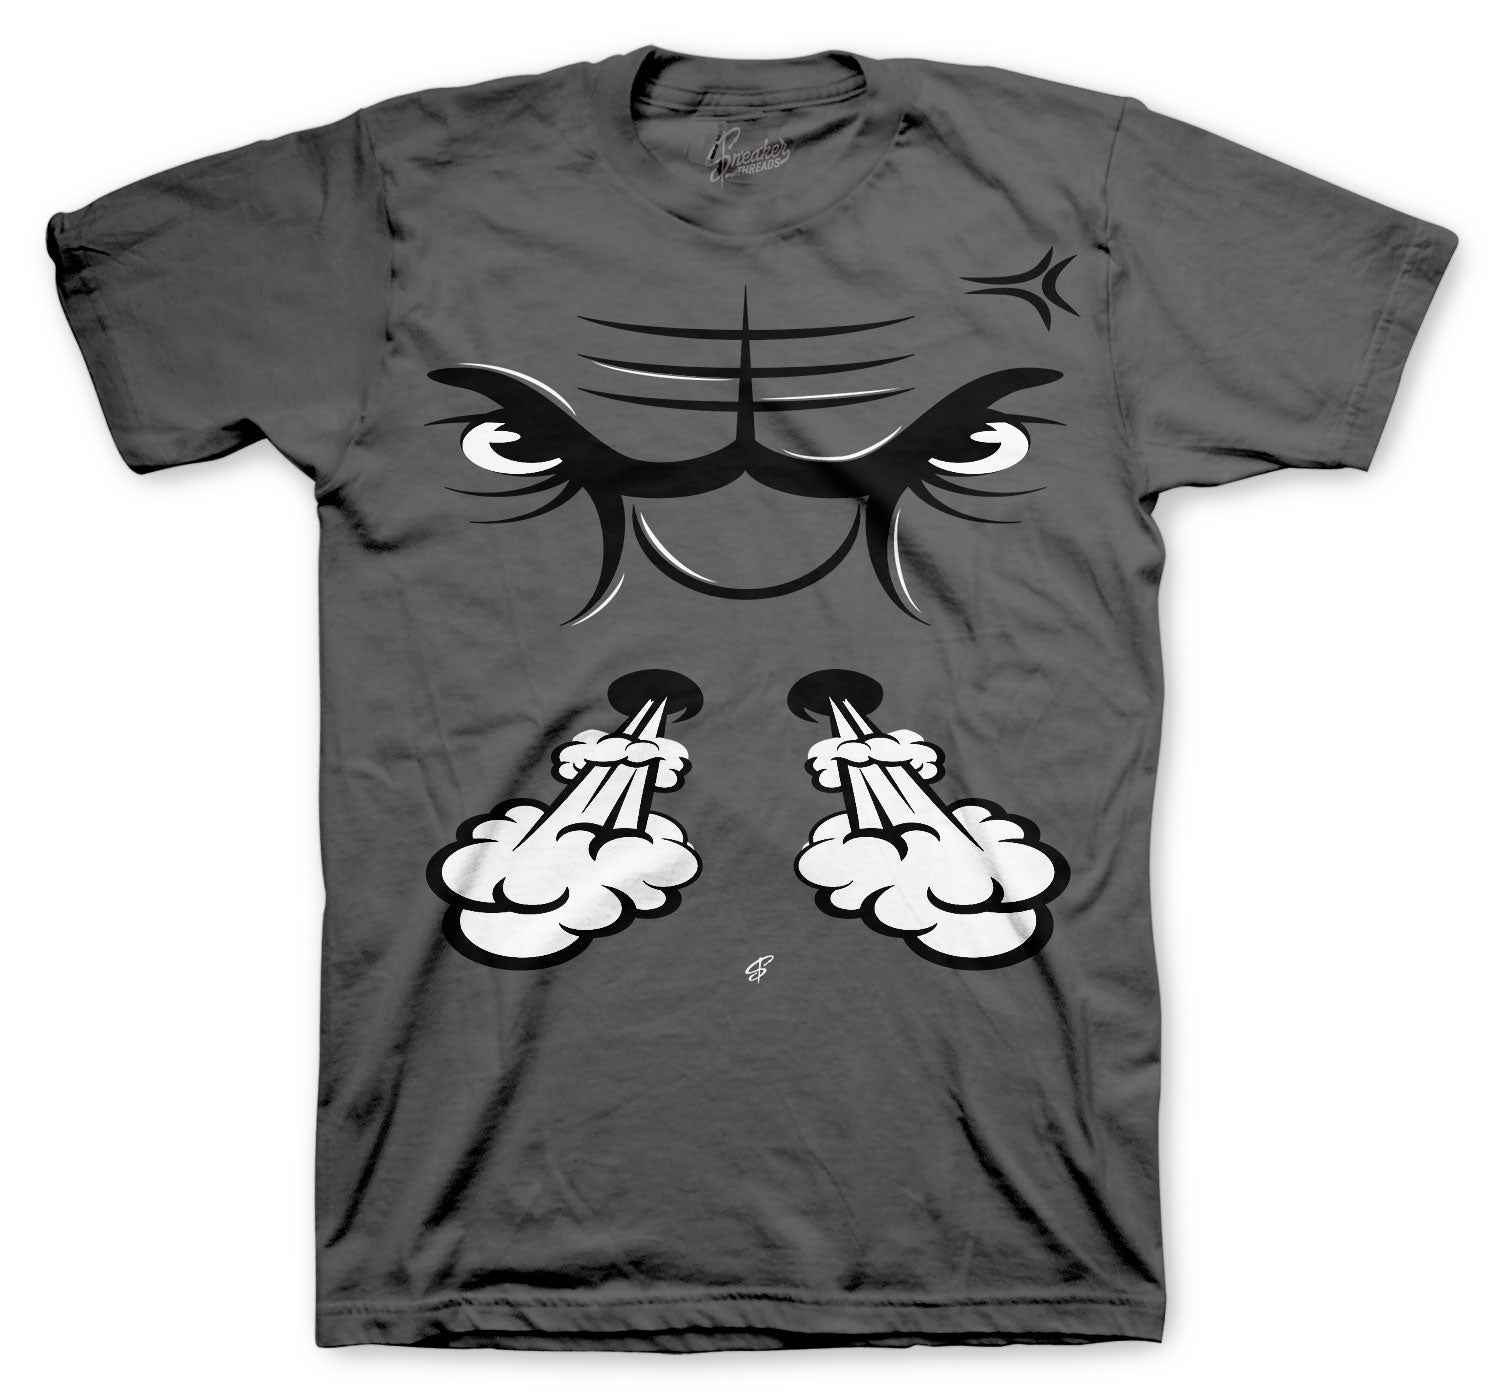 Jordan 4 Black Cat Bullface Shirt